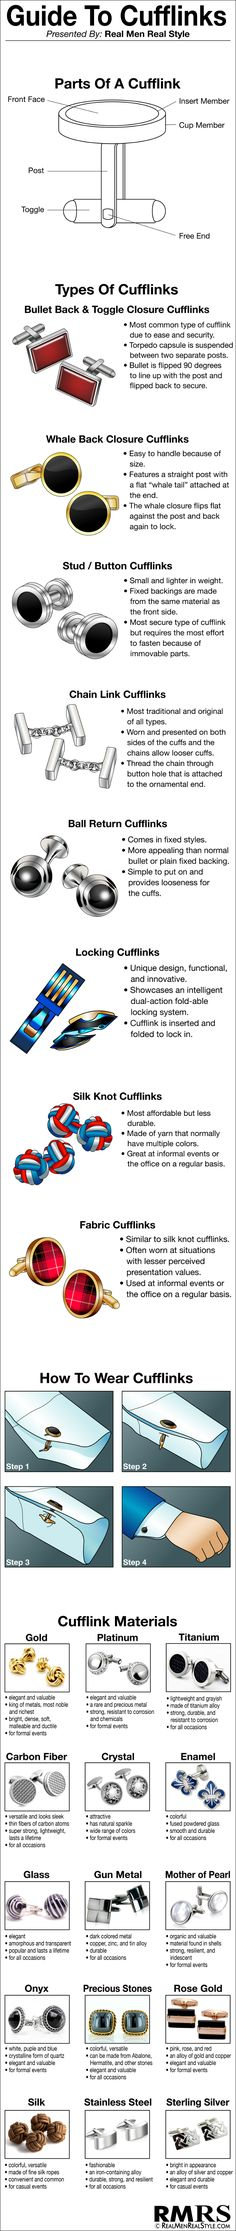 Ultimate Guide to Cufflinks Infographic | Man's Guide to Cuff-links | Cufflink Visual Chart #infographic #infographics